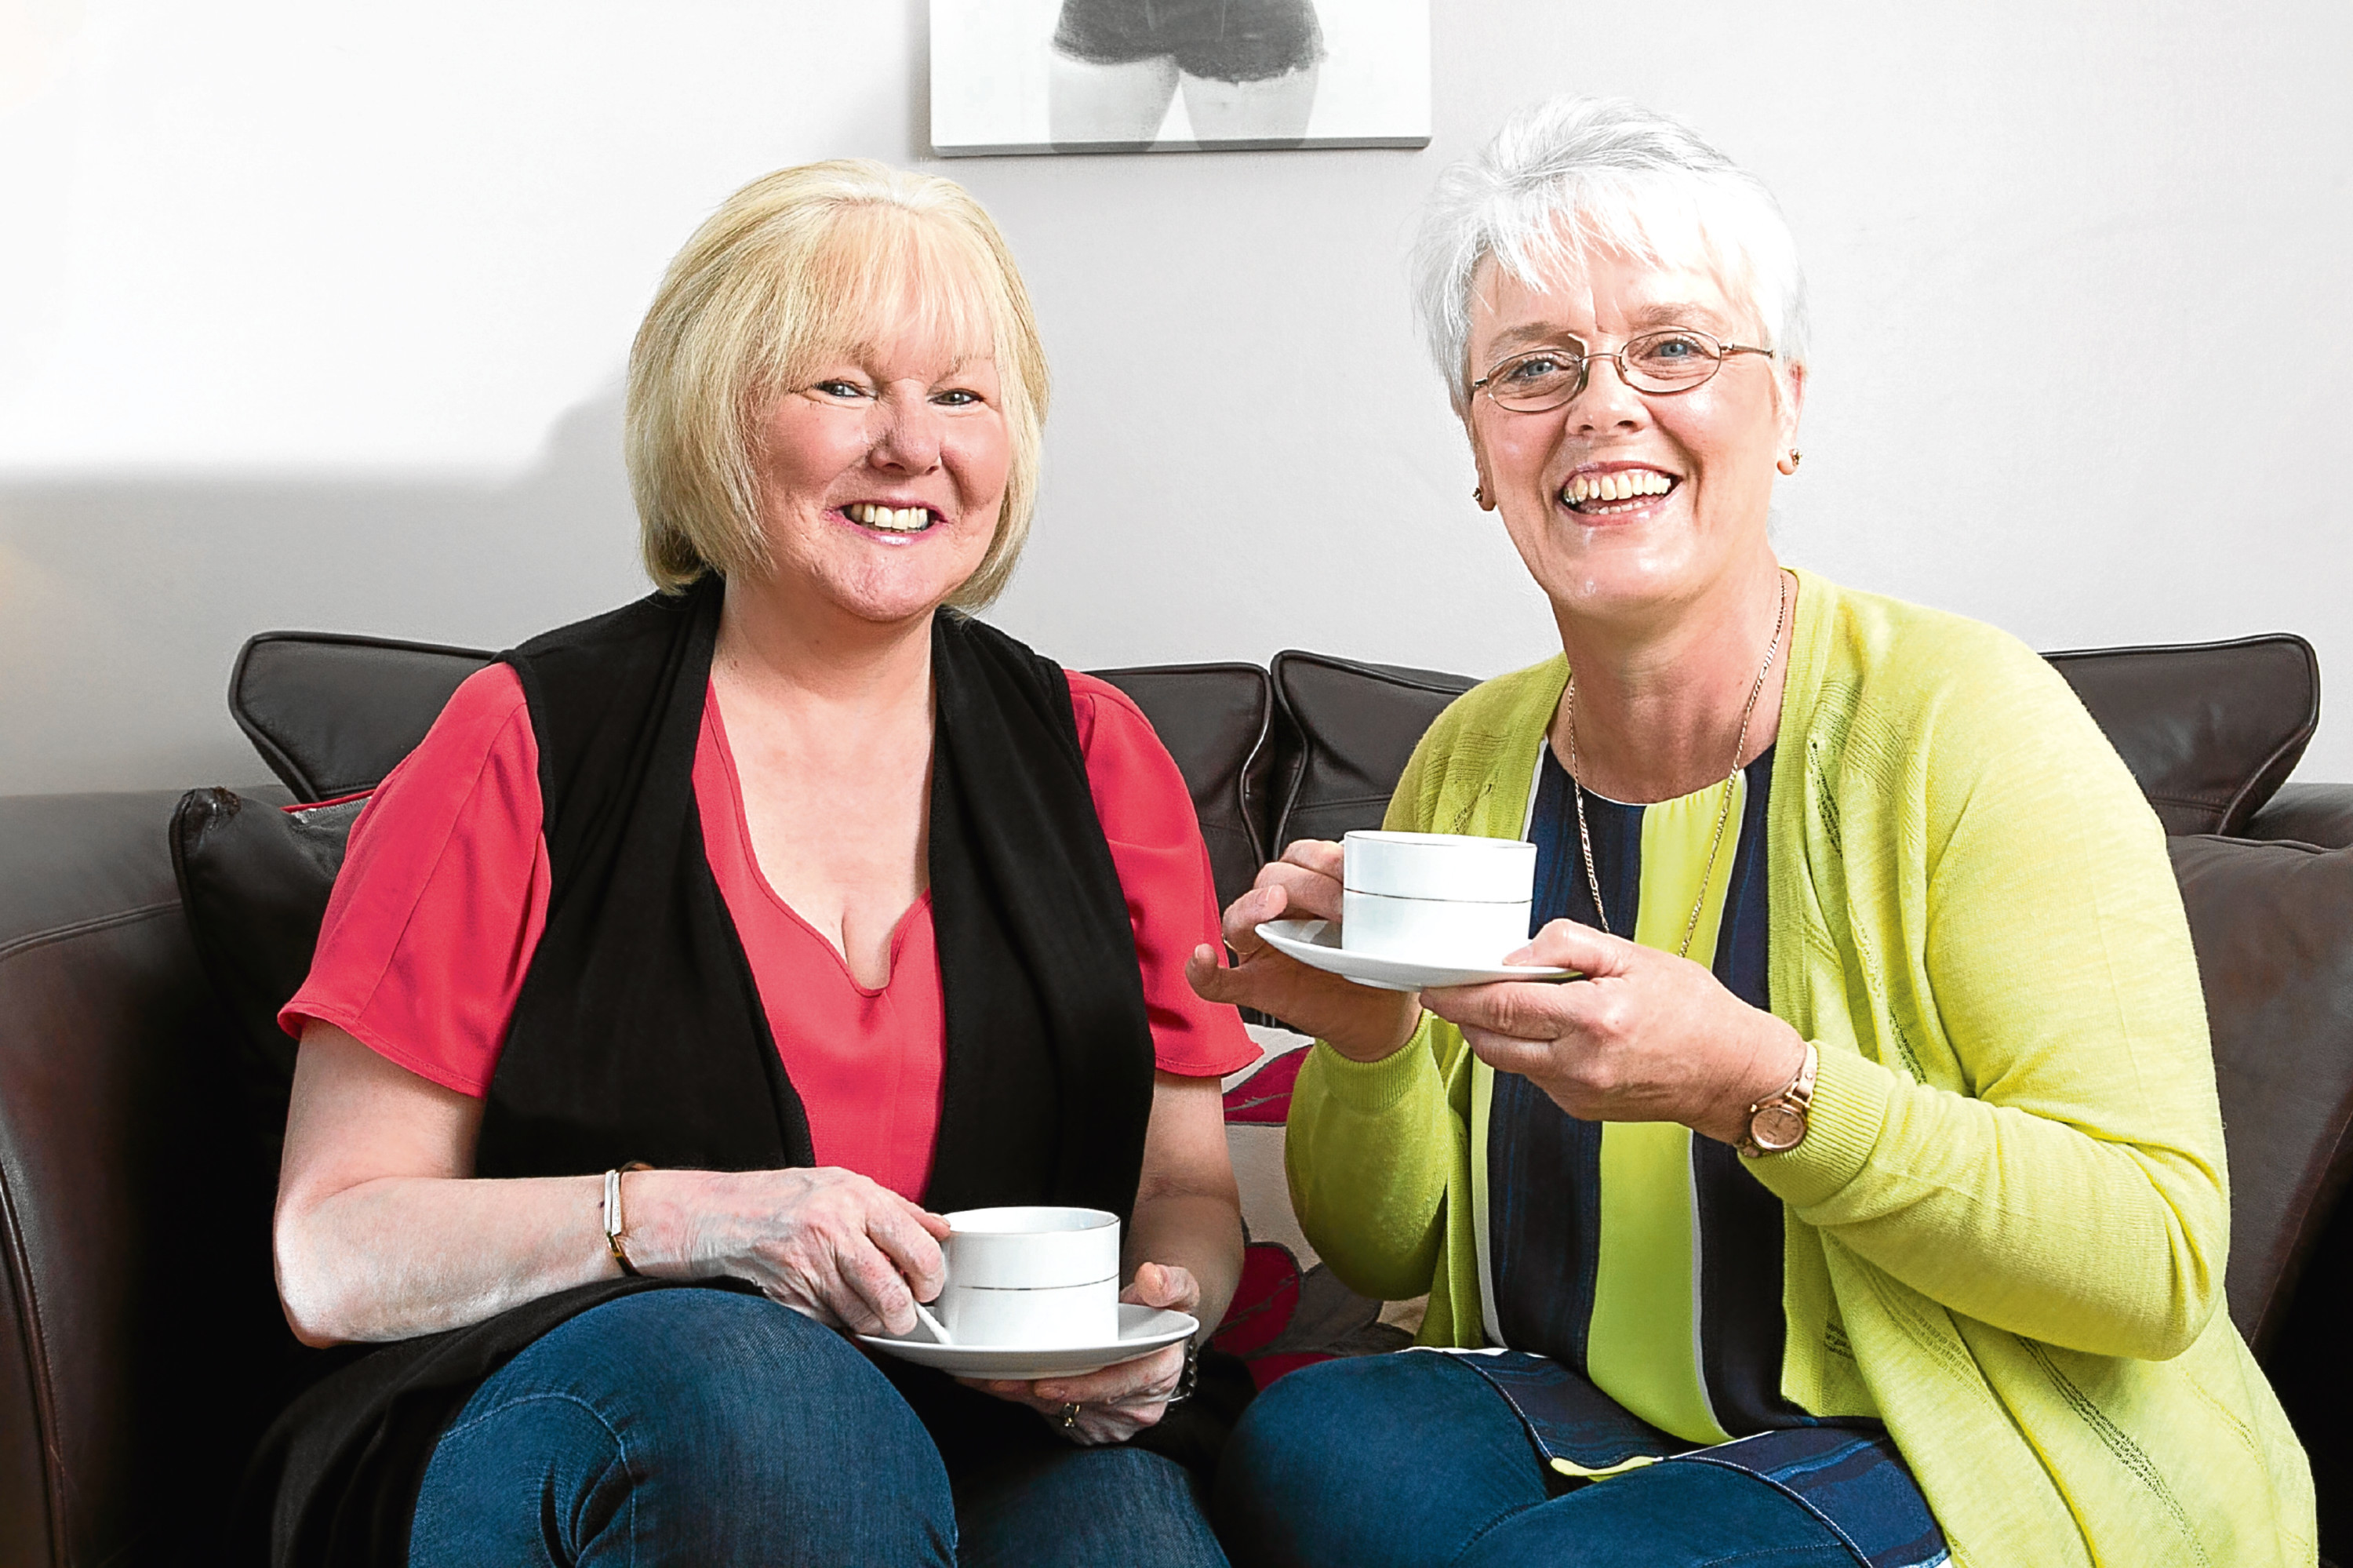 (L-R): Linda Thirlwell and Joy Wilson, best friends, who went to school together, and who have both had to battle cancer, but have supported each other through it (Andrew Cawley/ Sunday Post)